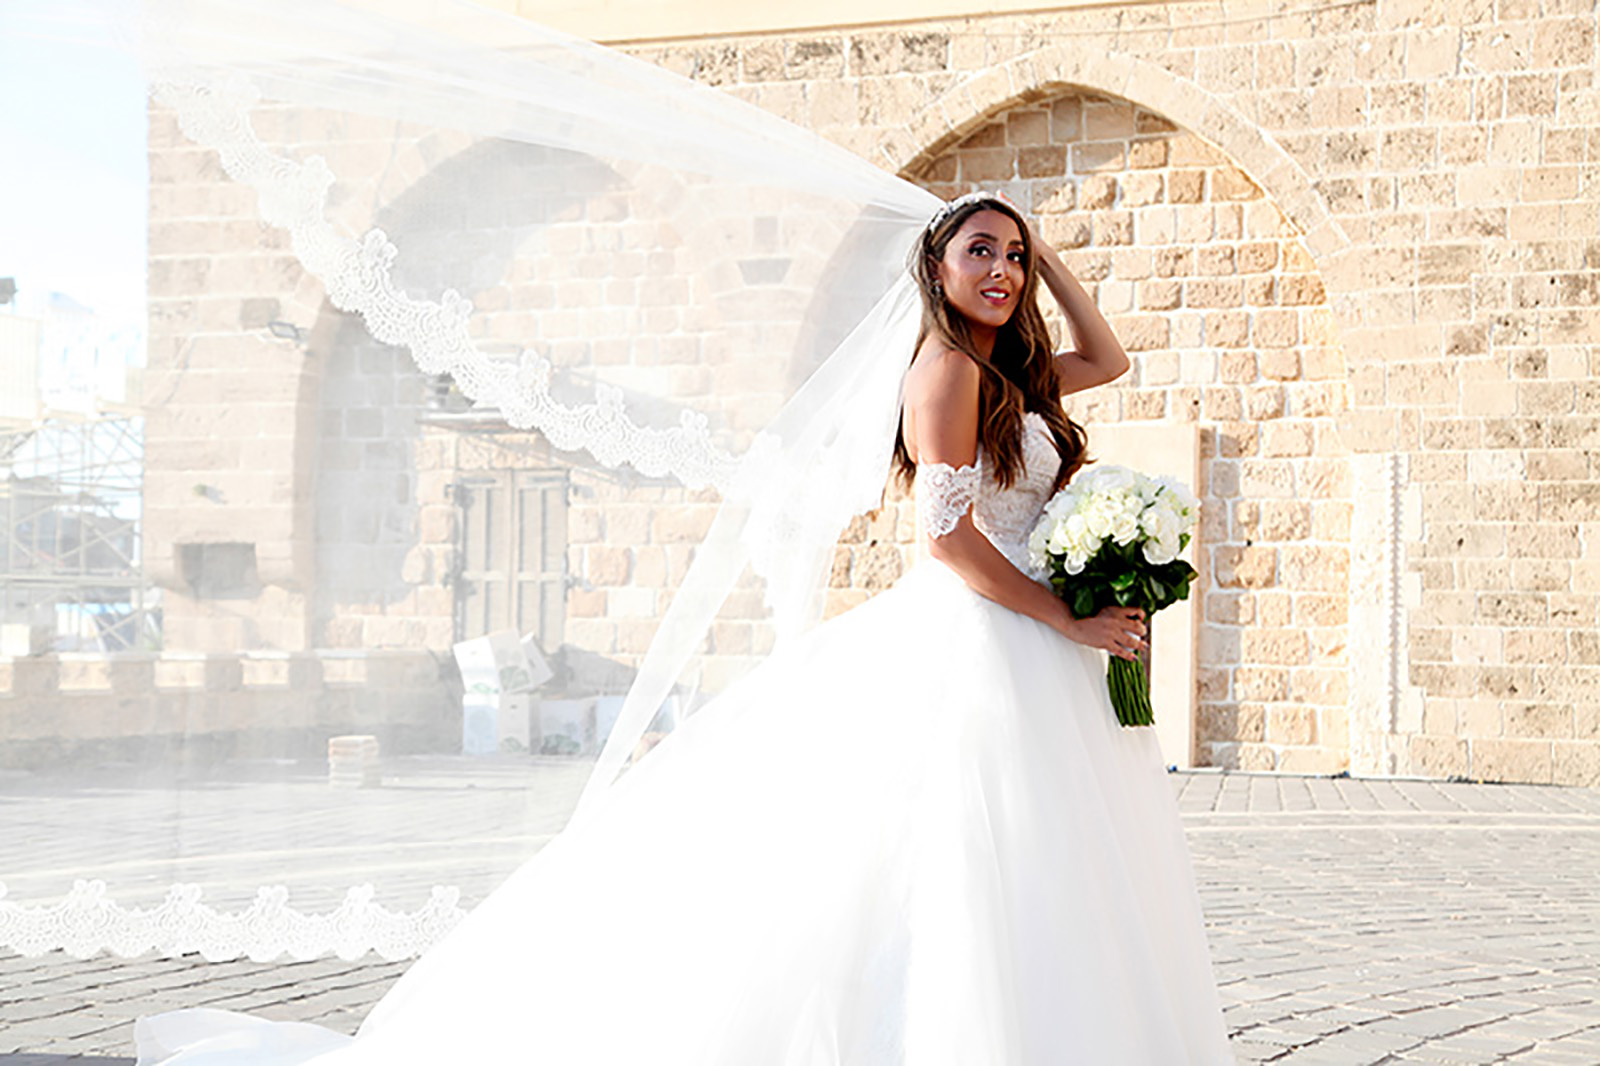 Destination Wedding Lebanon